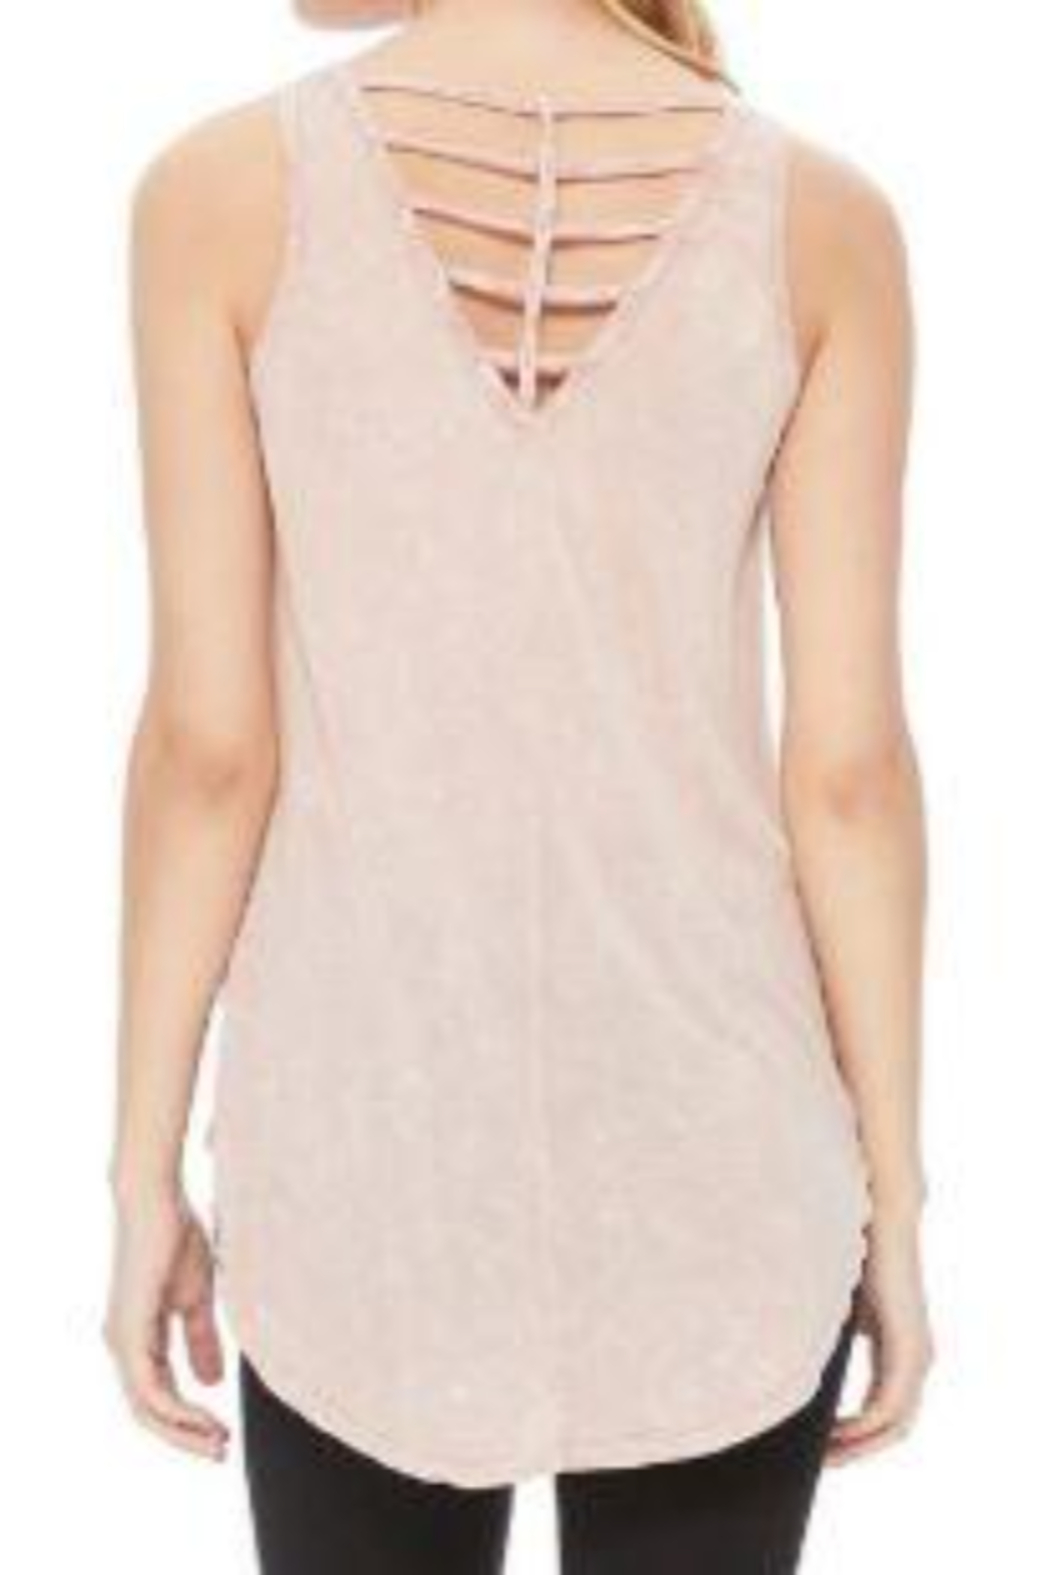 T Party Cris Cros Open Back Tank Top - Front Full Image